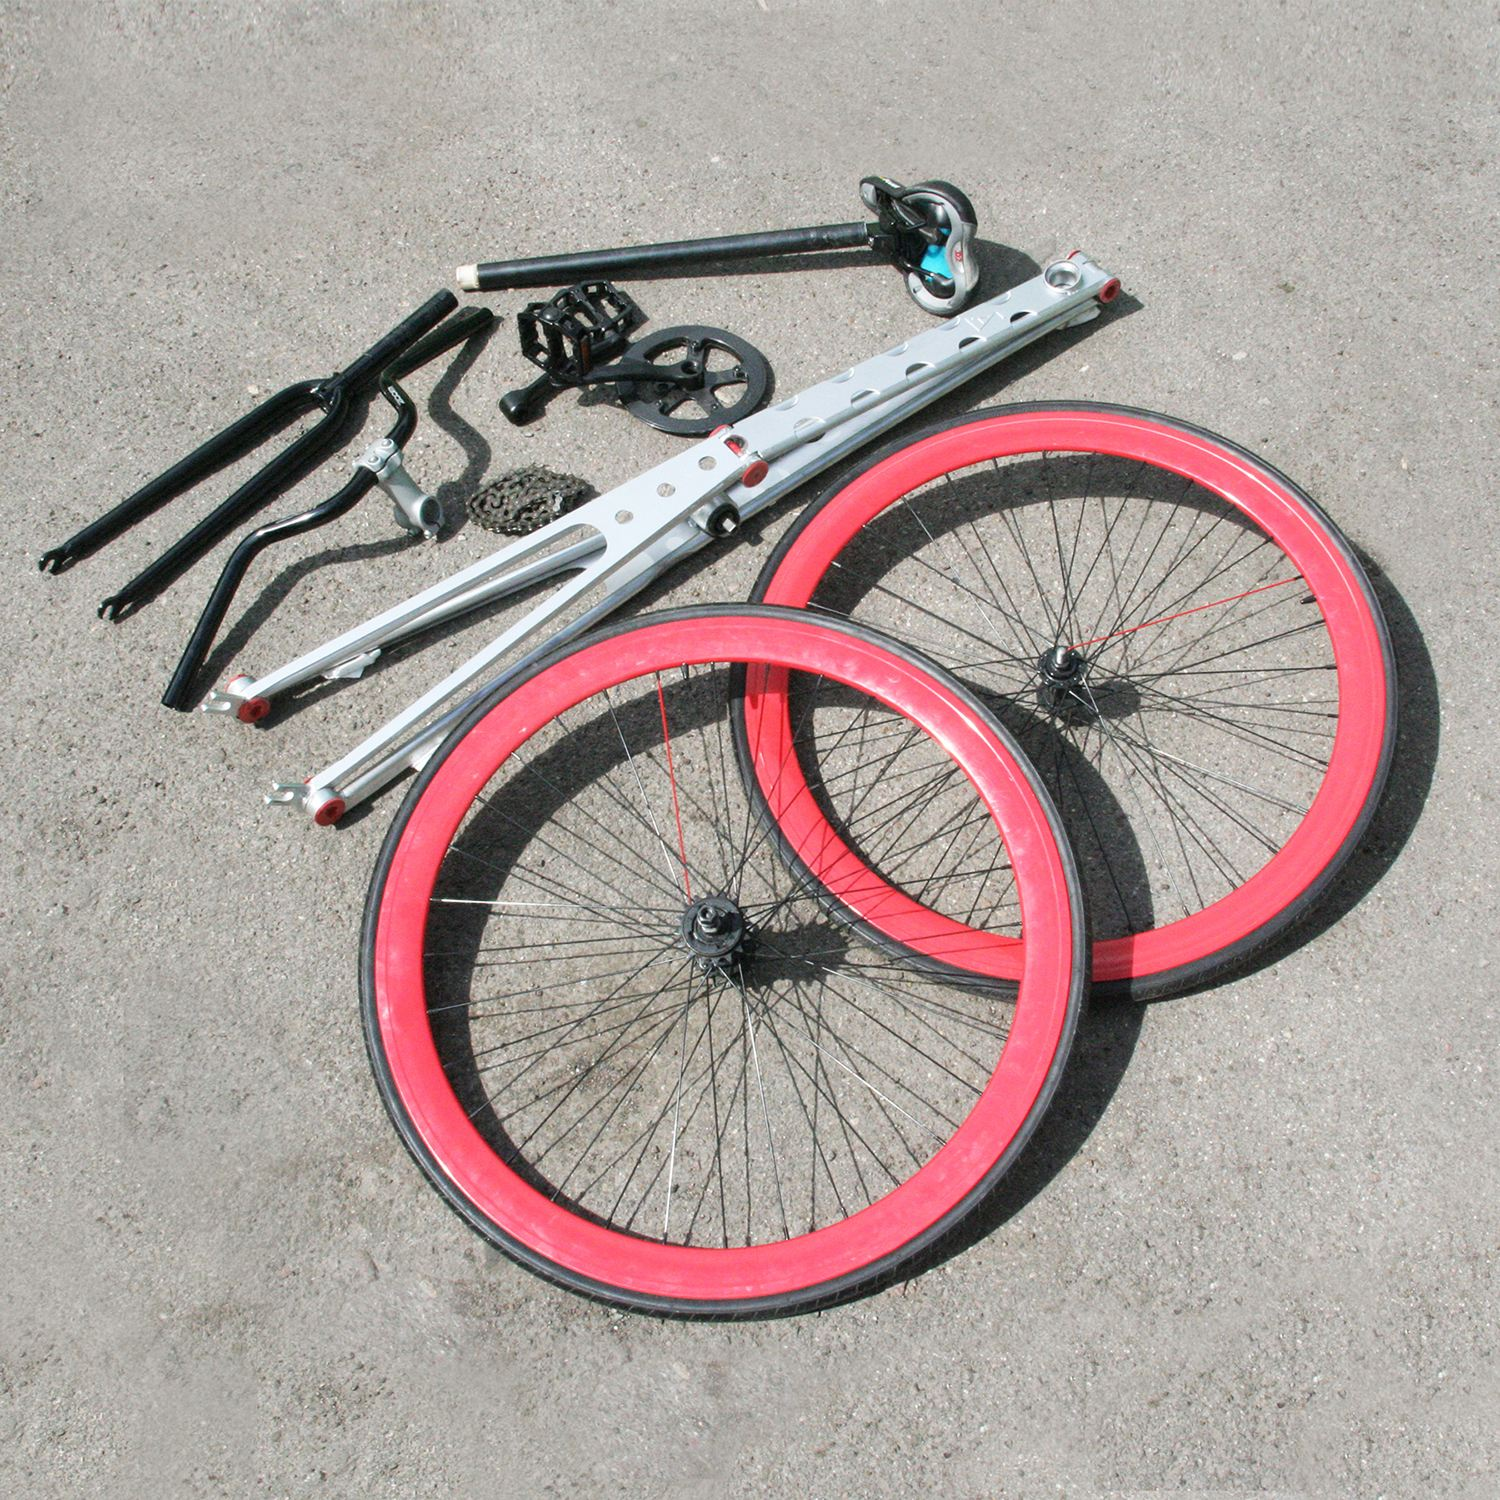 Atlos Folding Bicycle by Valeria Romanova